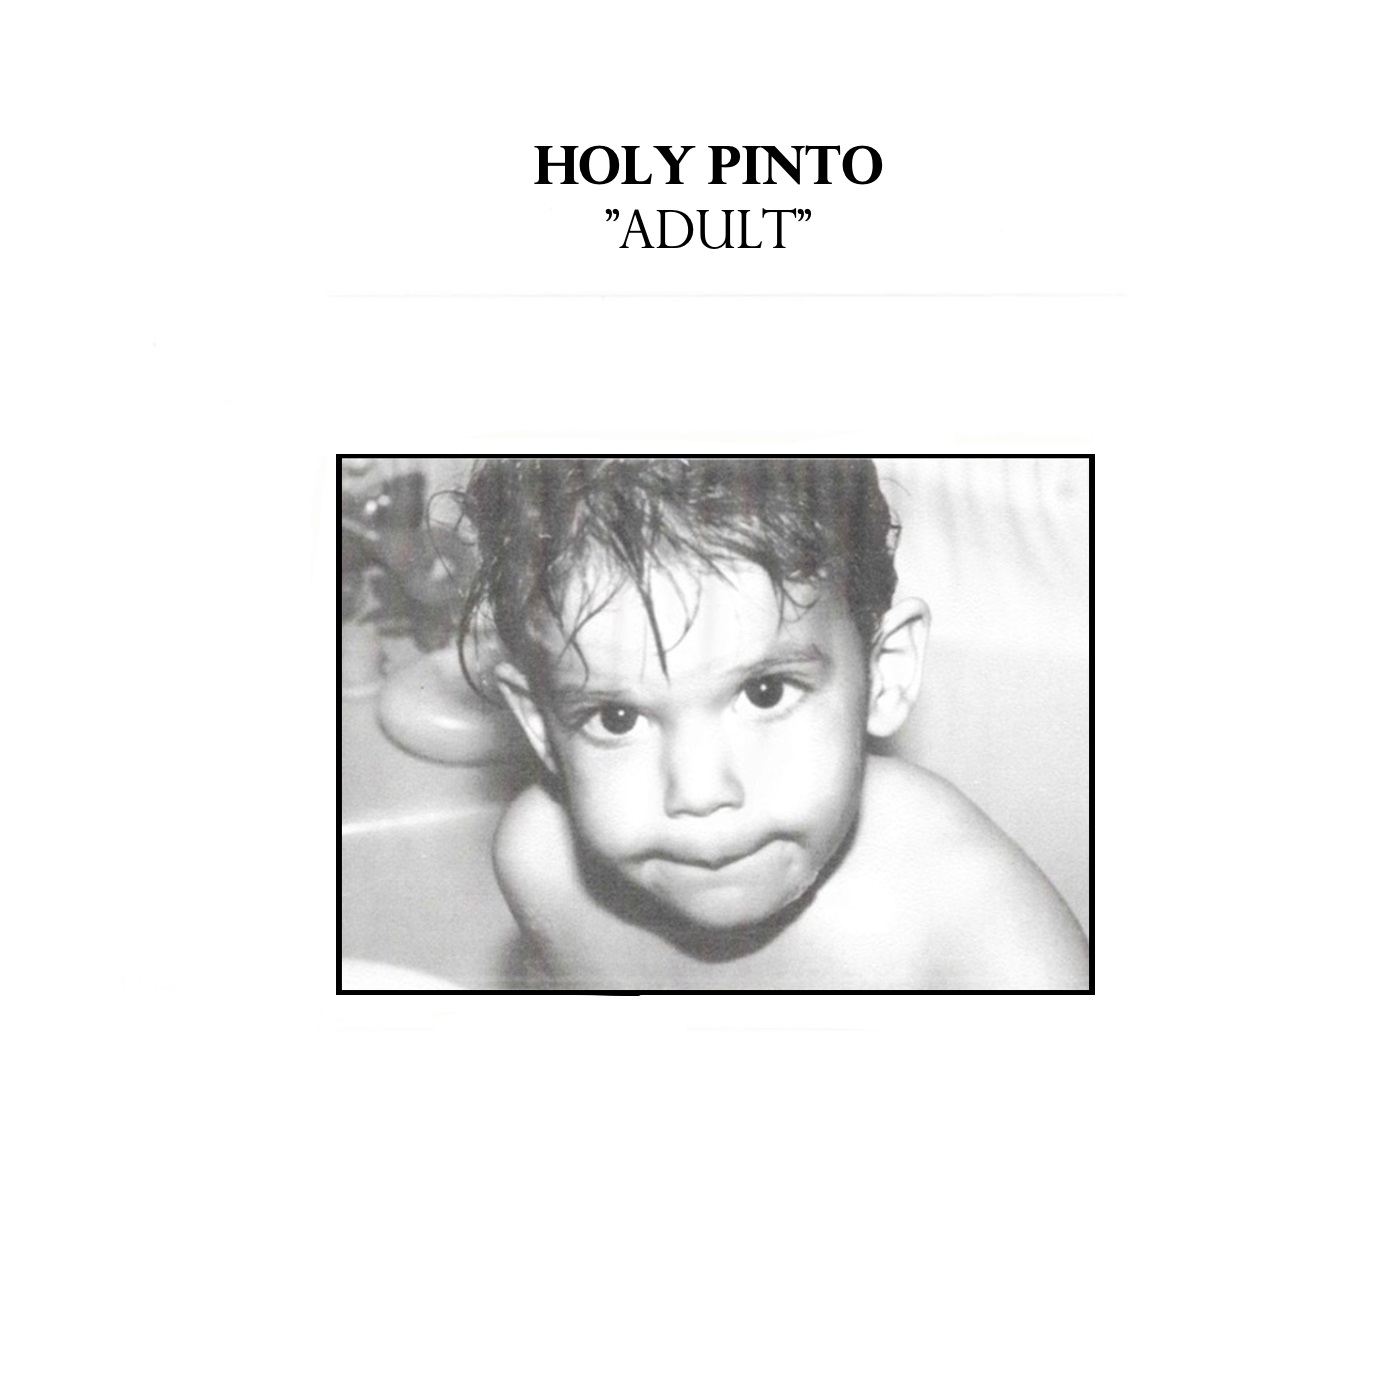 "REVIEW: Holy Pinto showcase growing pains on new album, ""Adult"""